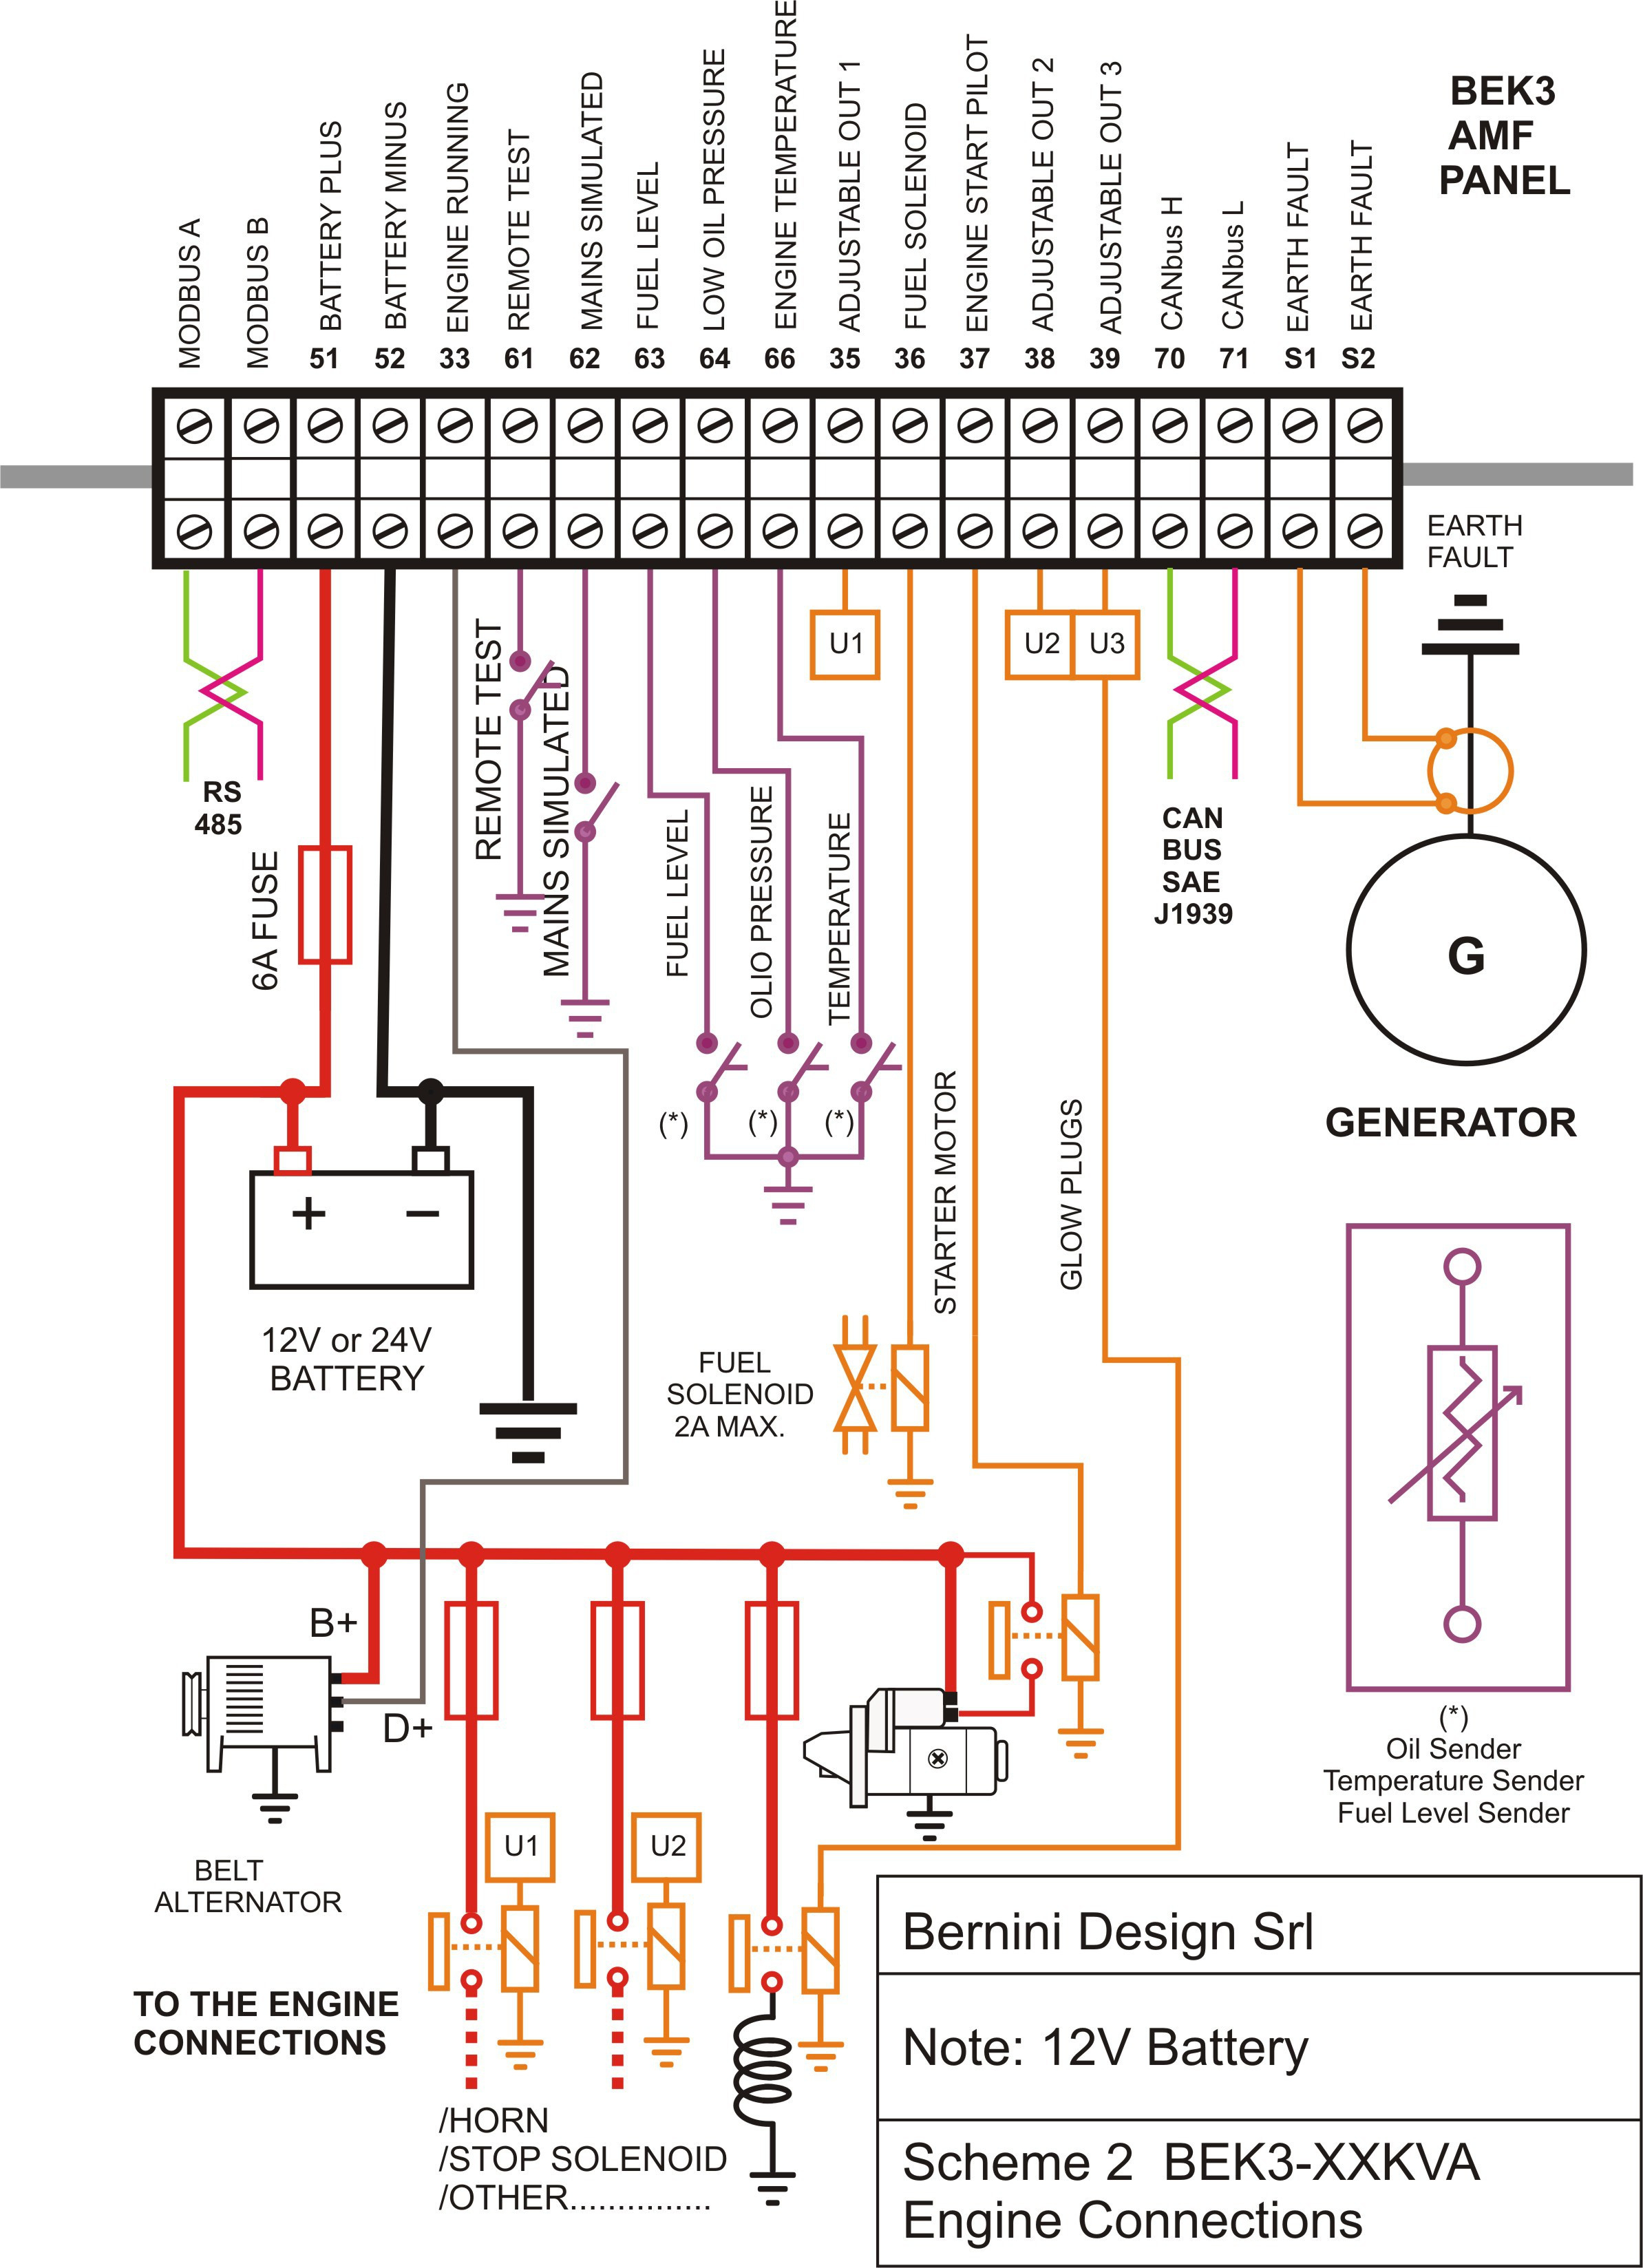 electrical control panel wiring diagram pdf Download-Perkins Generator Wiring Diagram Save Olympian Generator Control Diesel Generator Control Panel Wiring Diagram 2-c